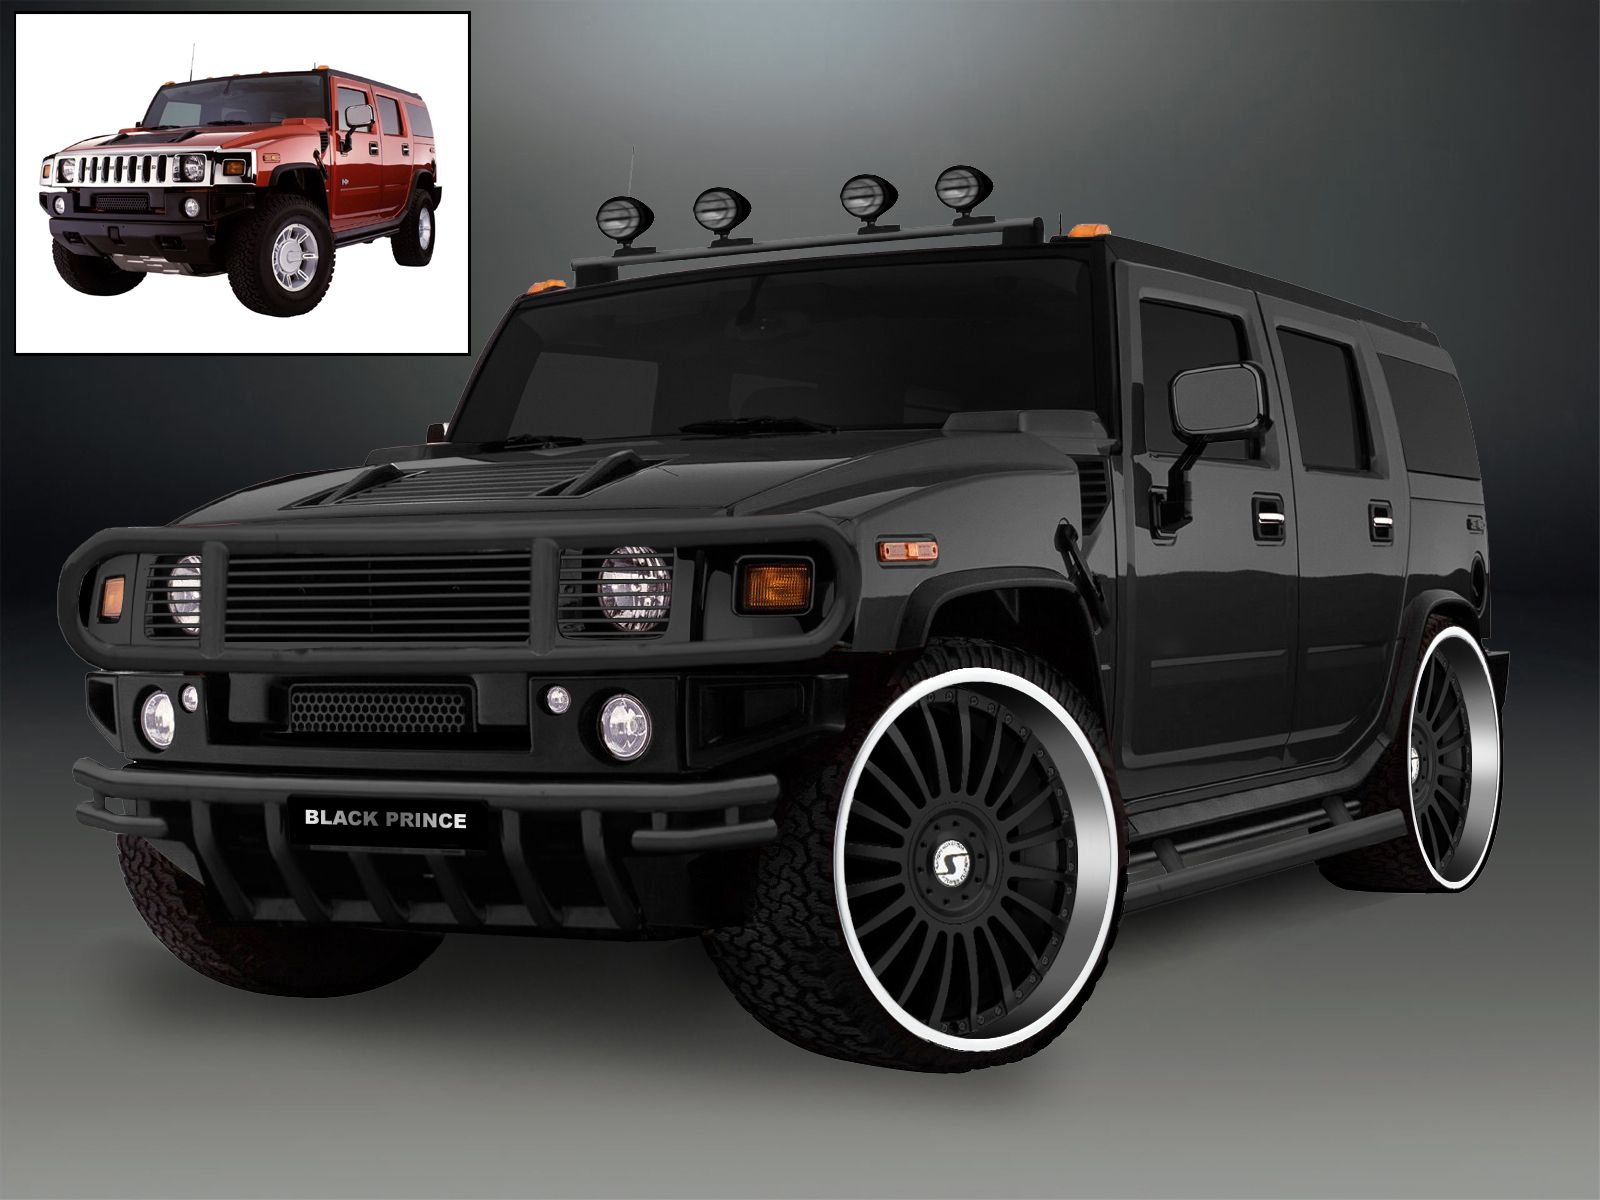 Hummer H2 HD Wallpaper Hummer Pinterest